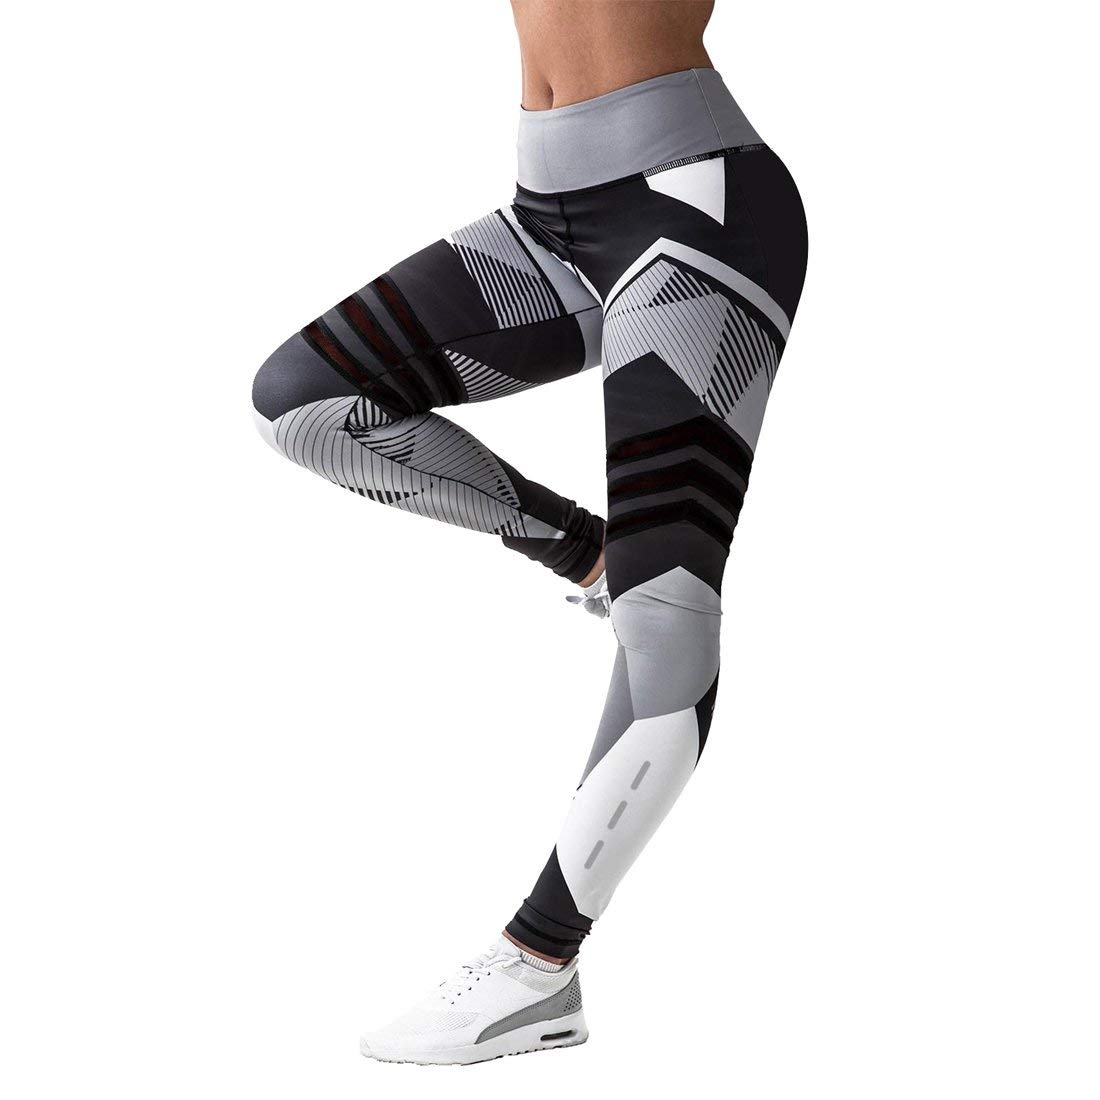 d162018381077 Get Quotations · RIBIKA Skinny Sport Leggings Yoga Pant Exercise Workout  High Waist Flexible Compression